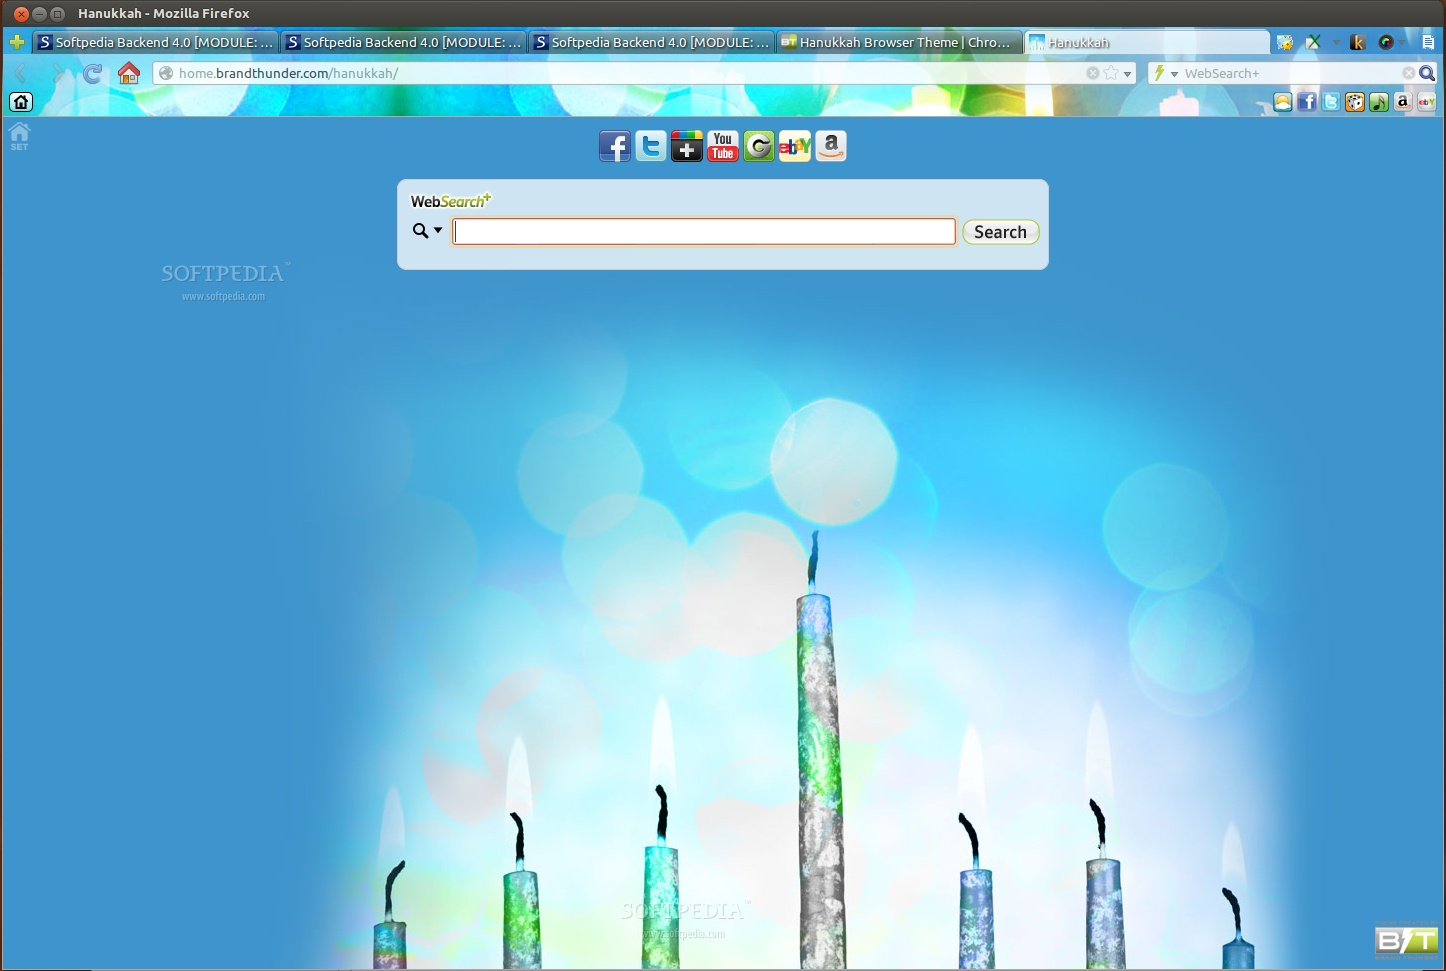 Hanukkah for Firefox screenshot 2